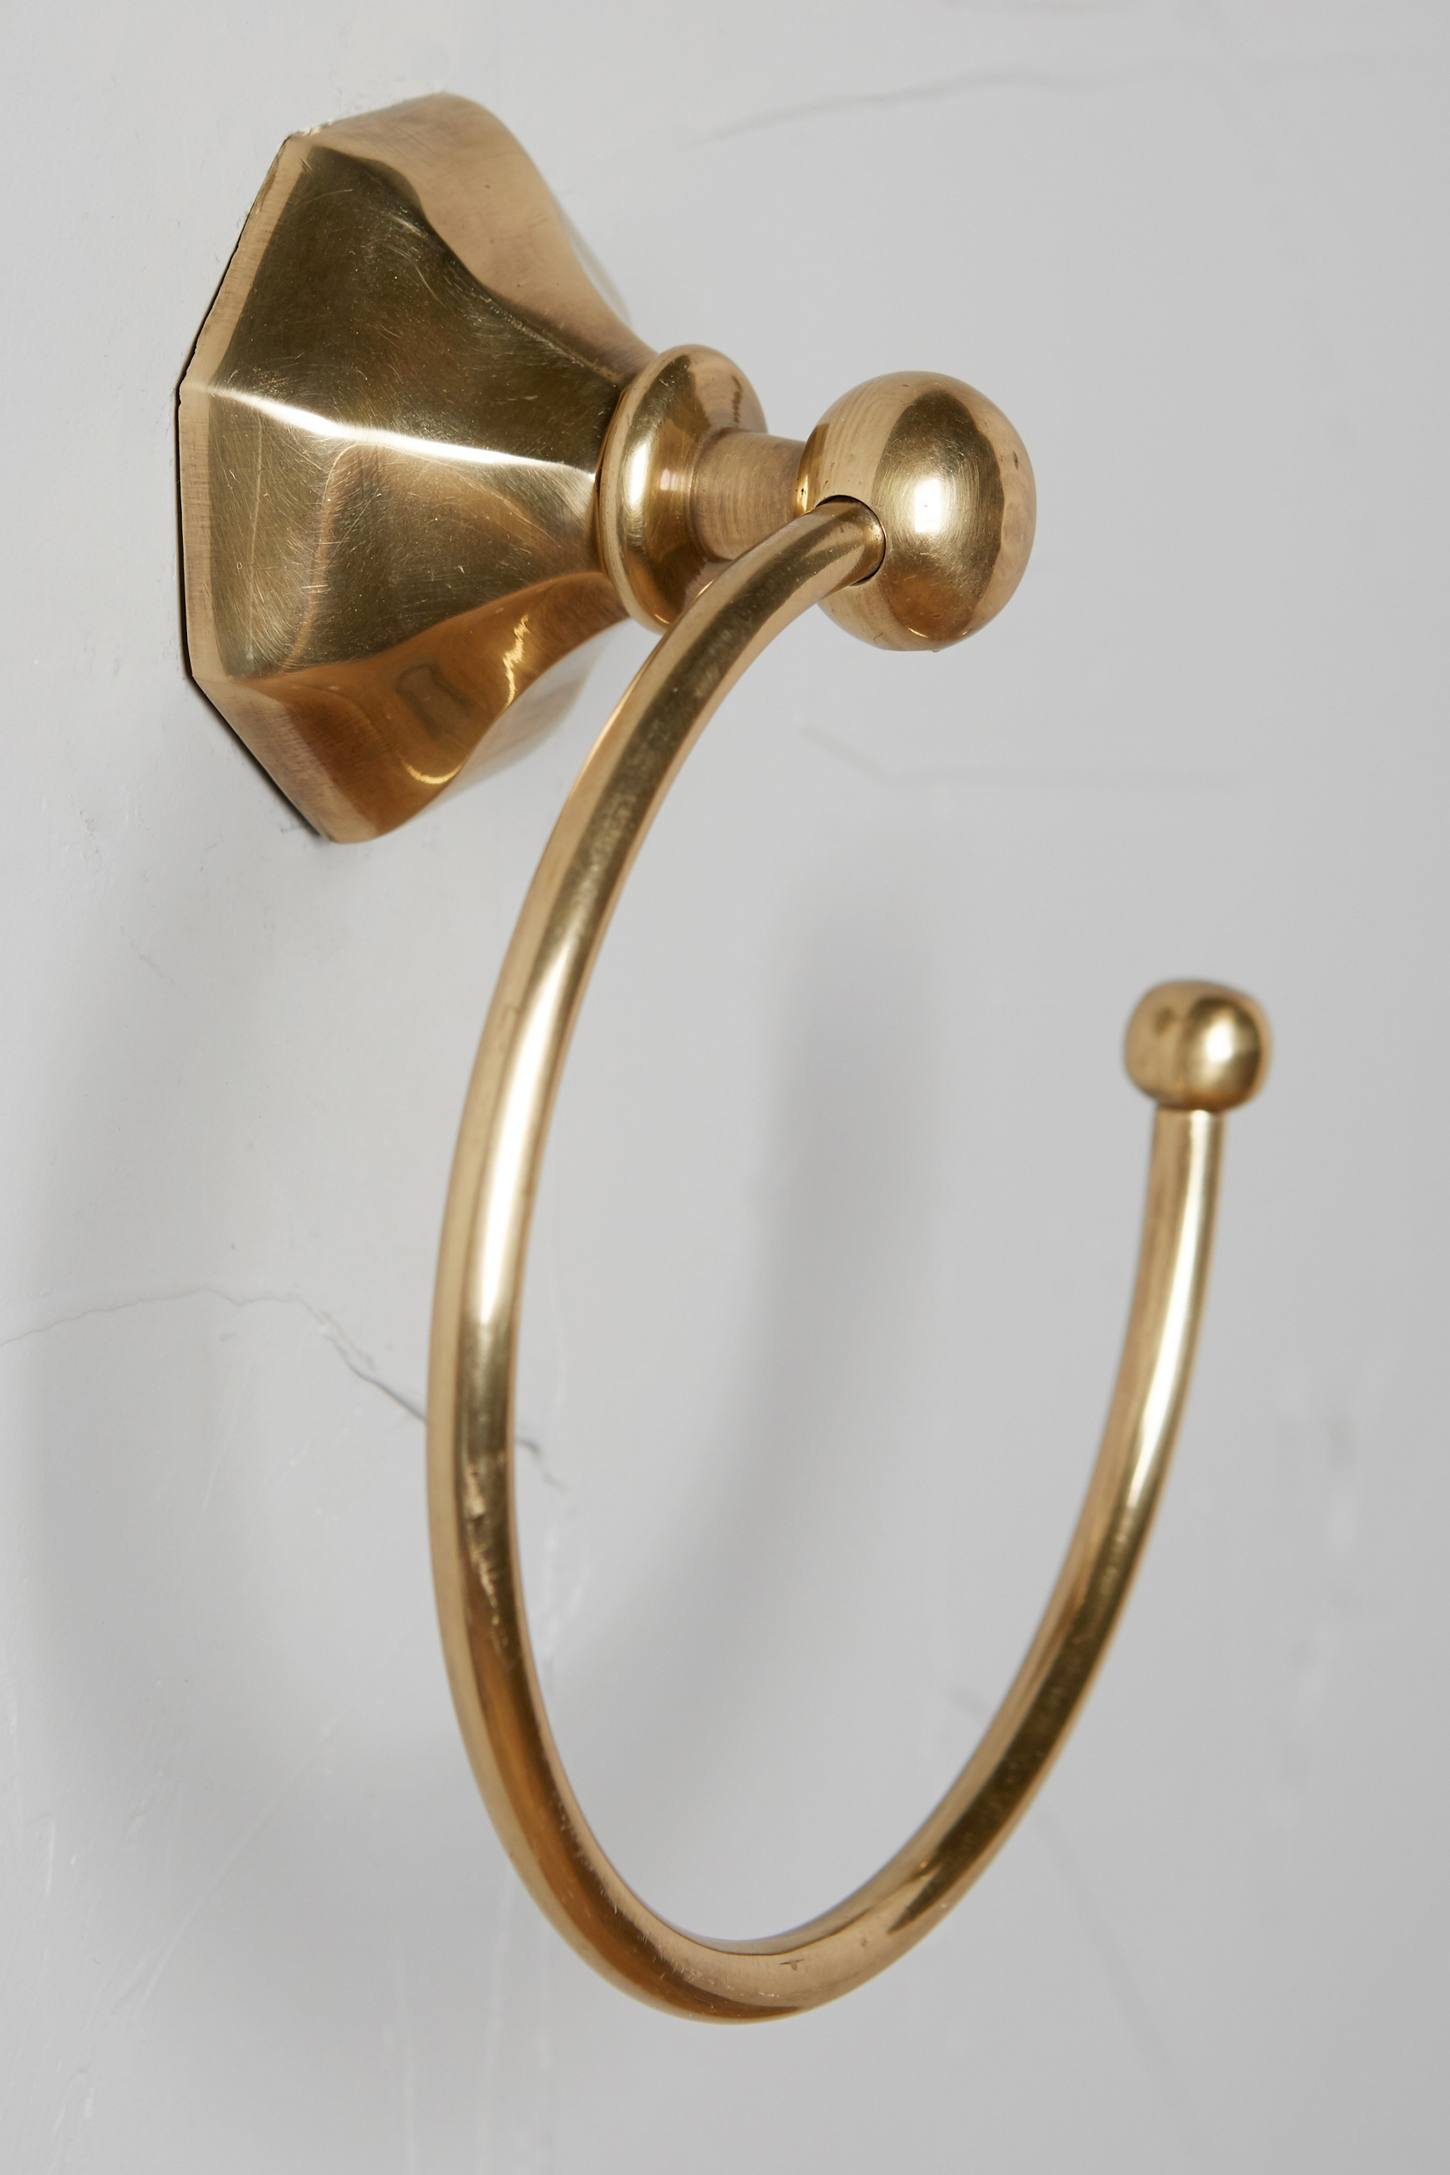 Slide View: 8: Brass Circlet Towel Bar